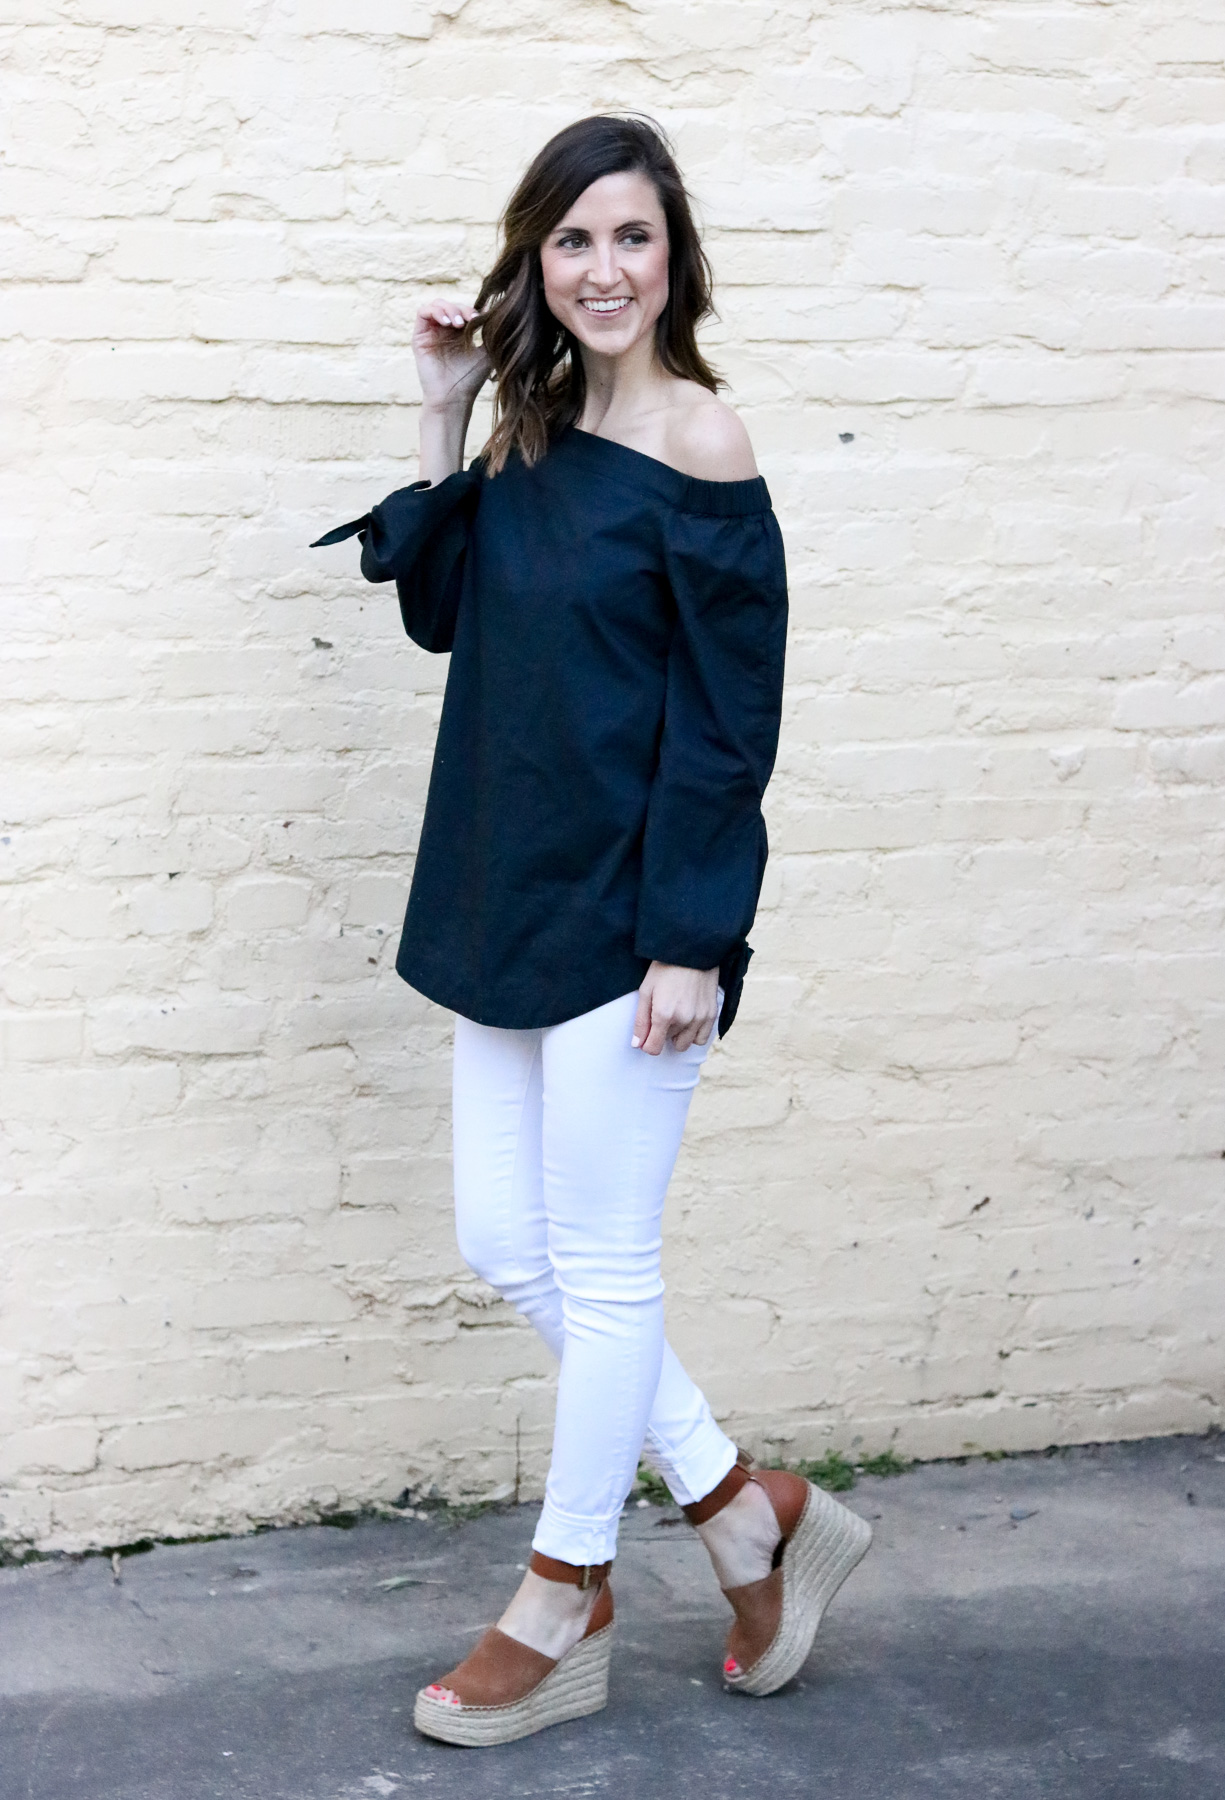 Off the Shoulder Top - Cobalt Chronicles @cobaltchronicle